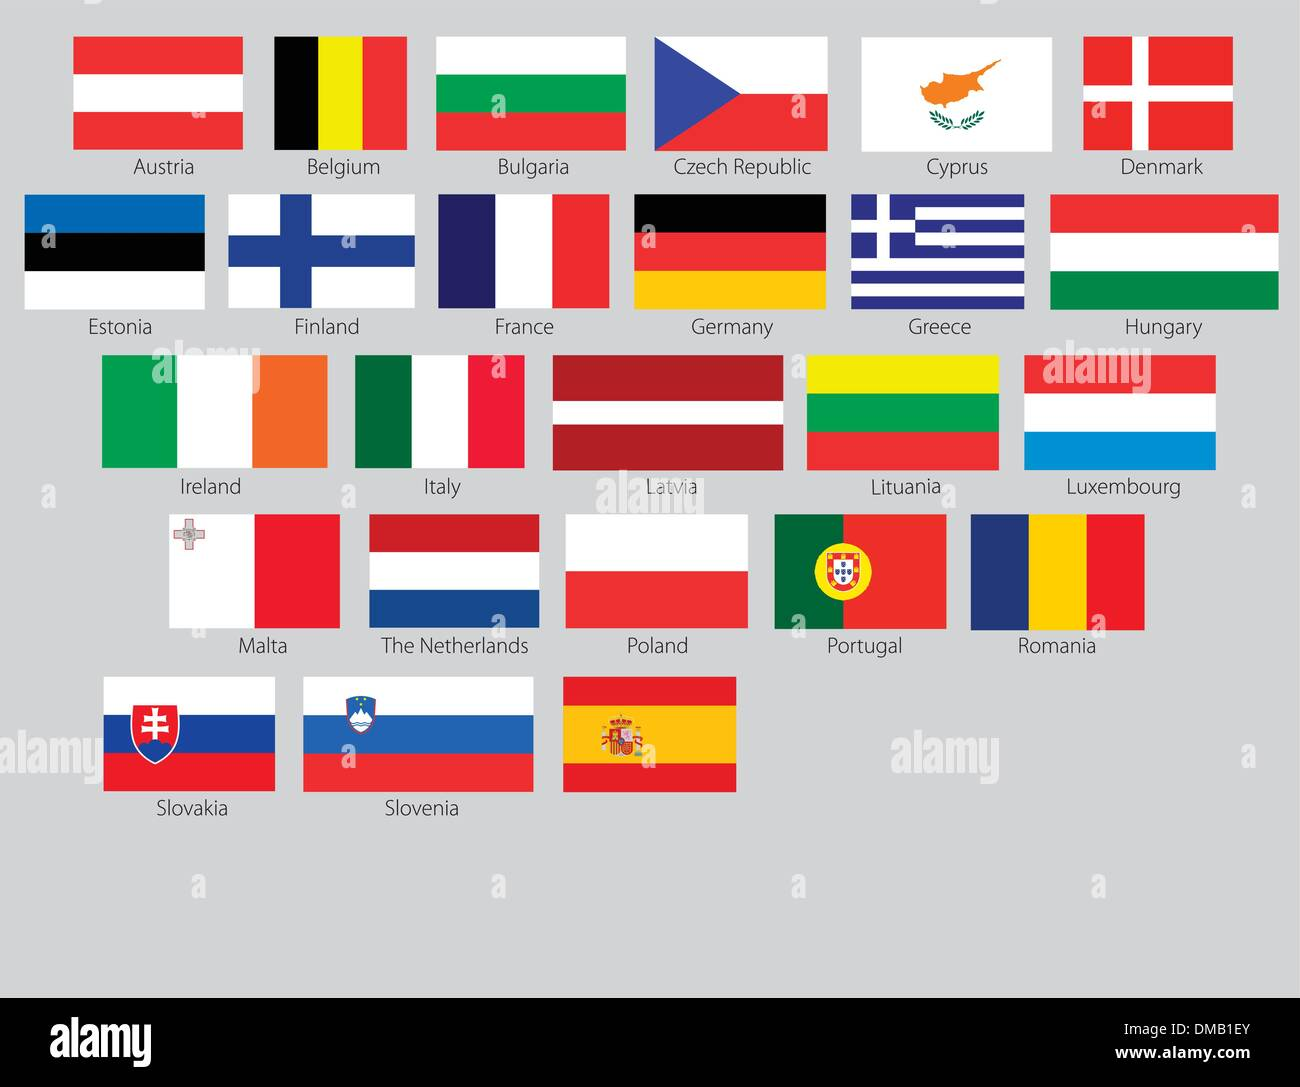 Flags of the 27 members of the European Union - Stock Vector